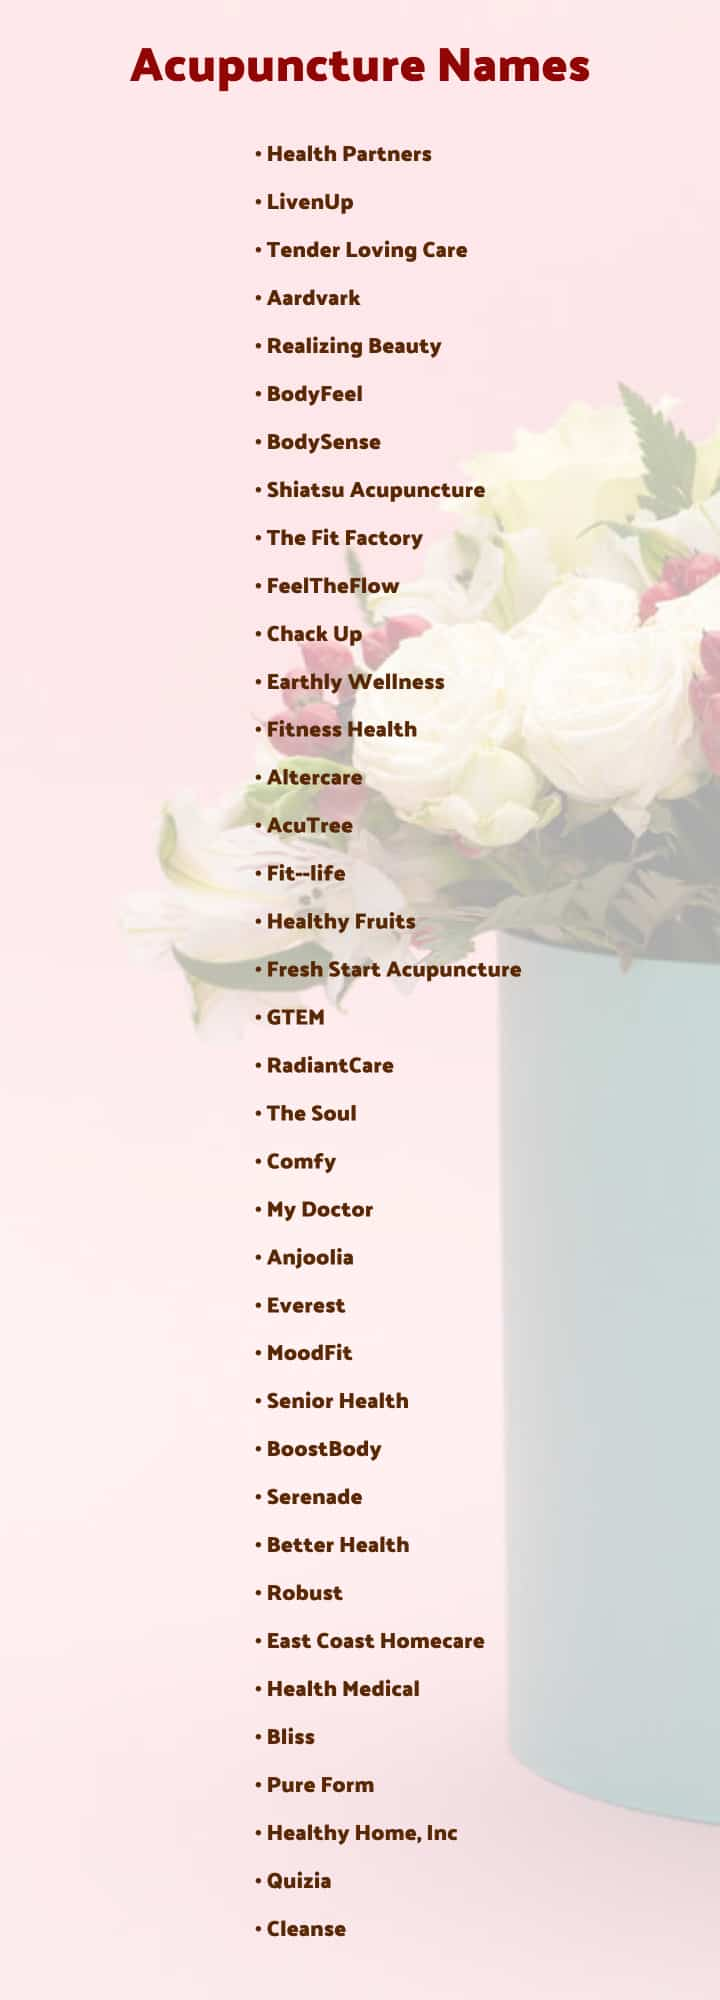 acupuncture clinic names list